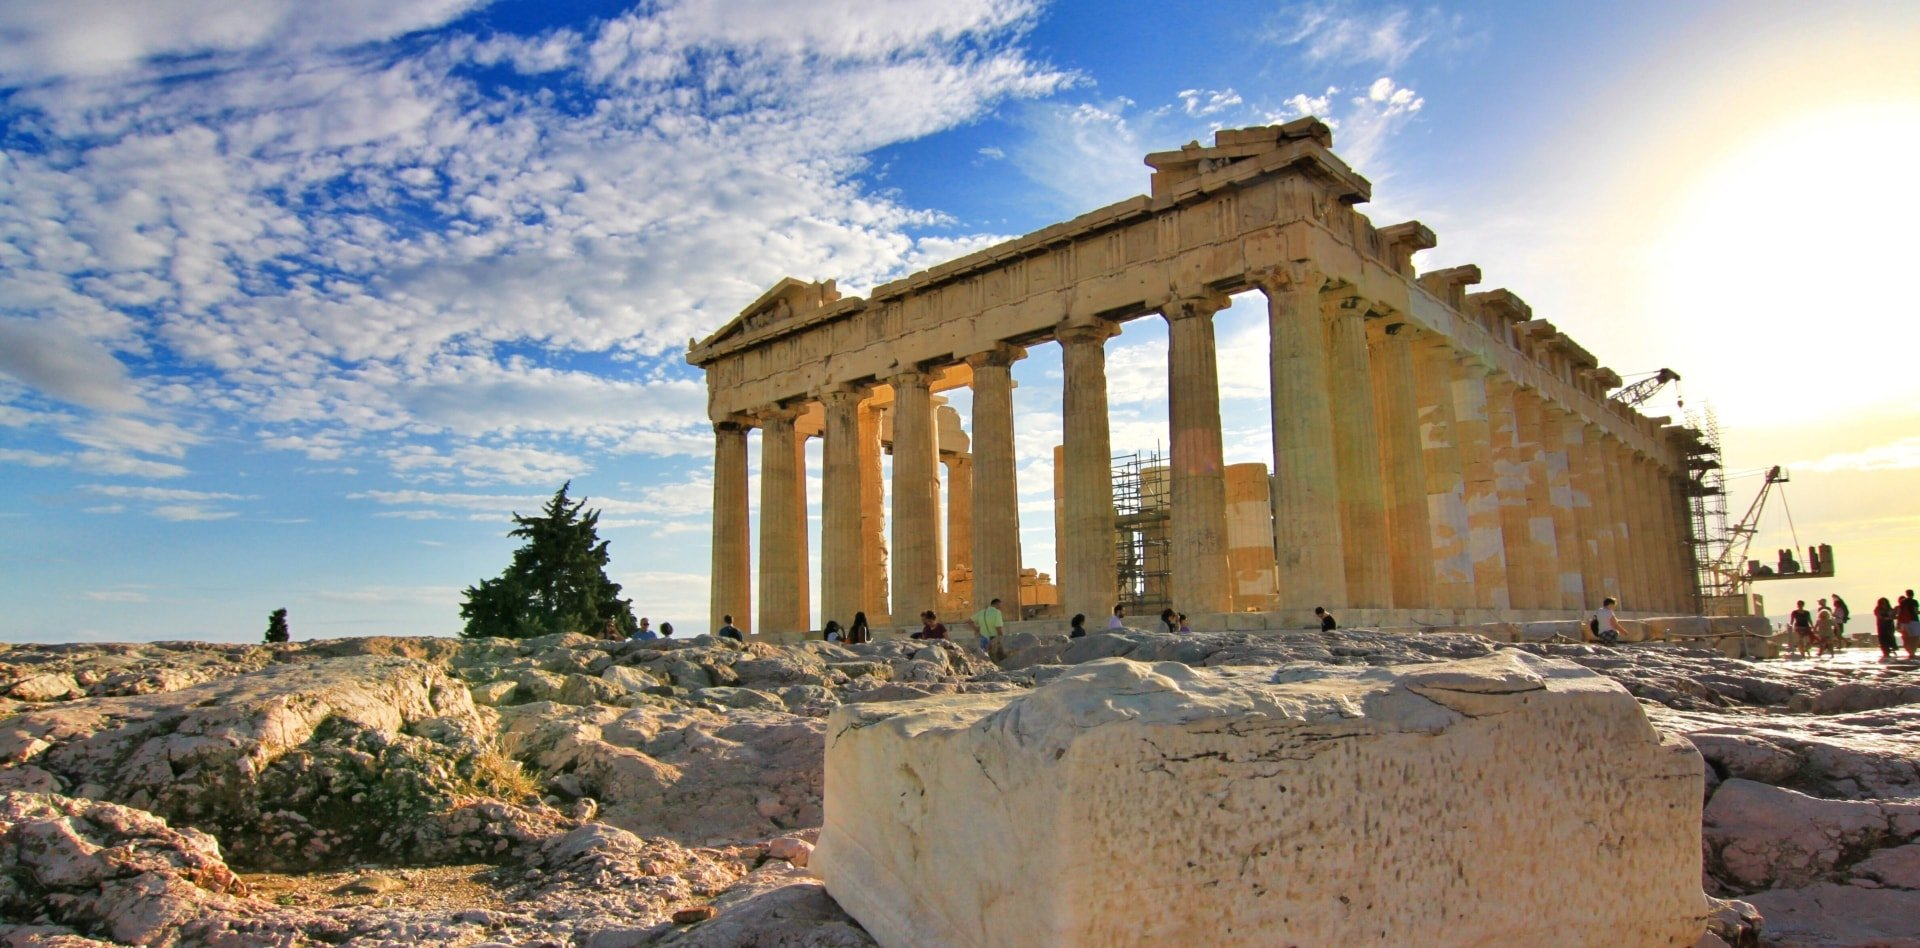 Build your trip in Greece